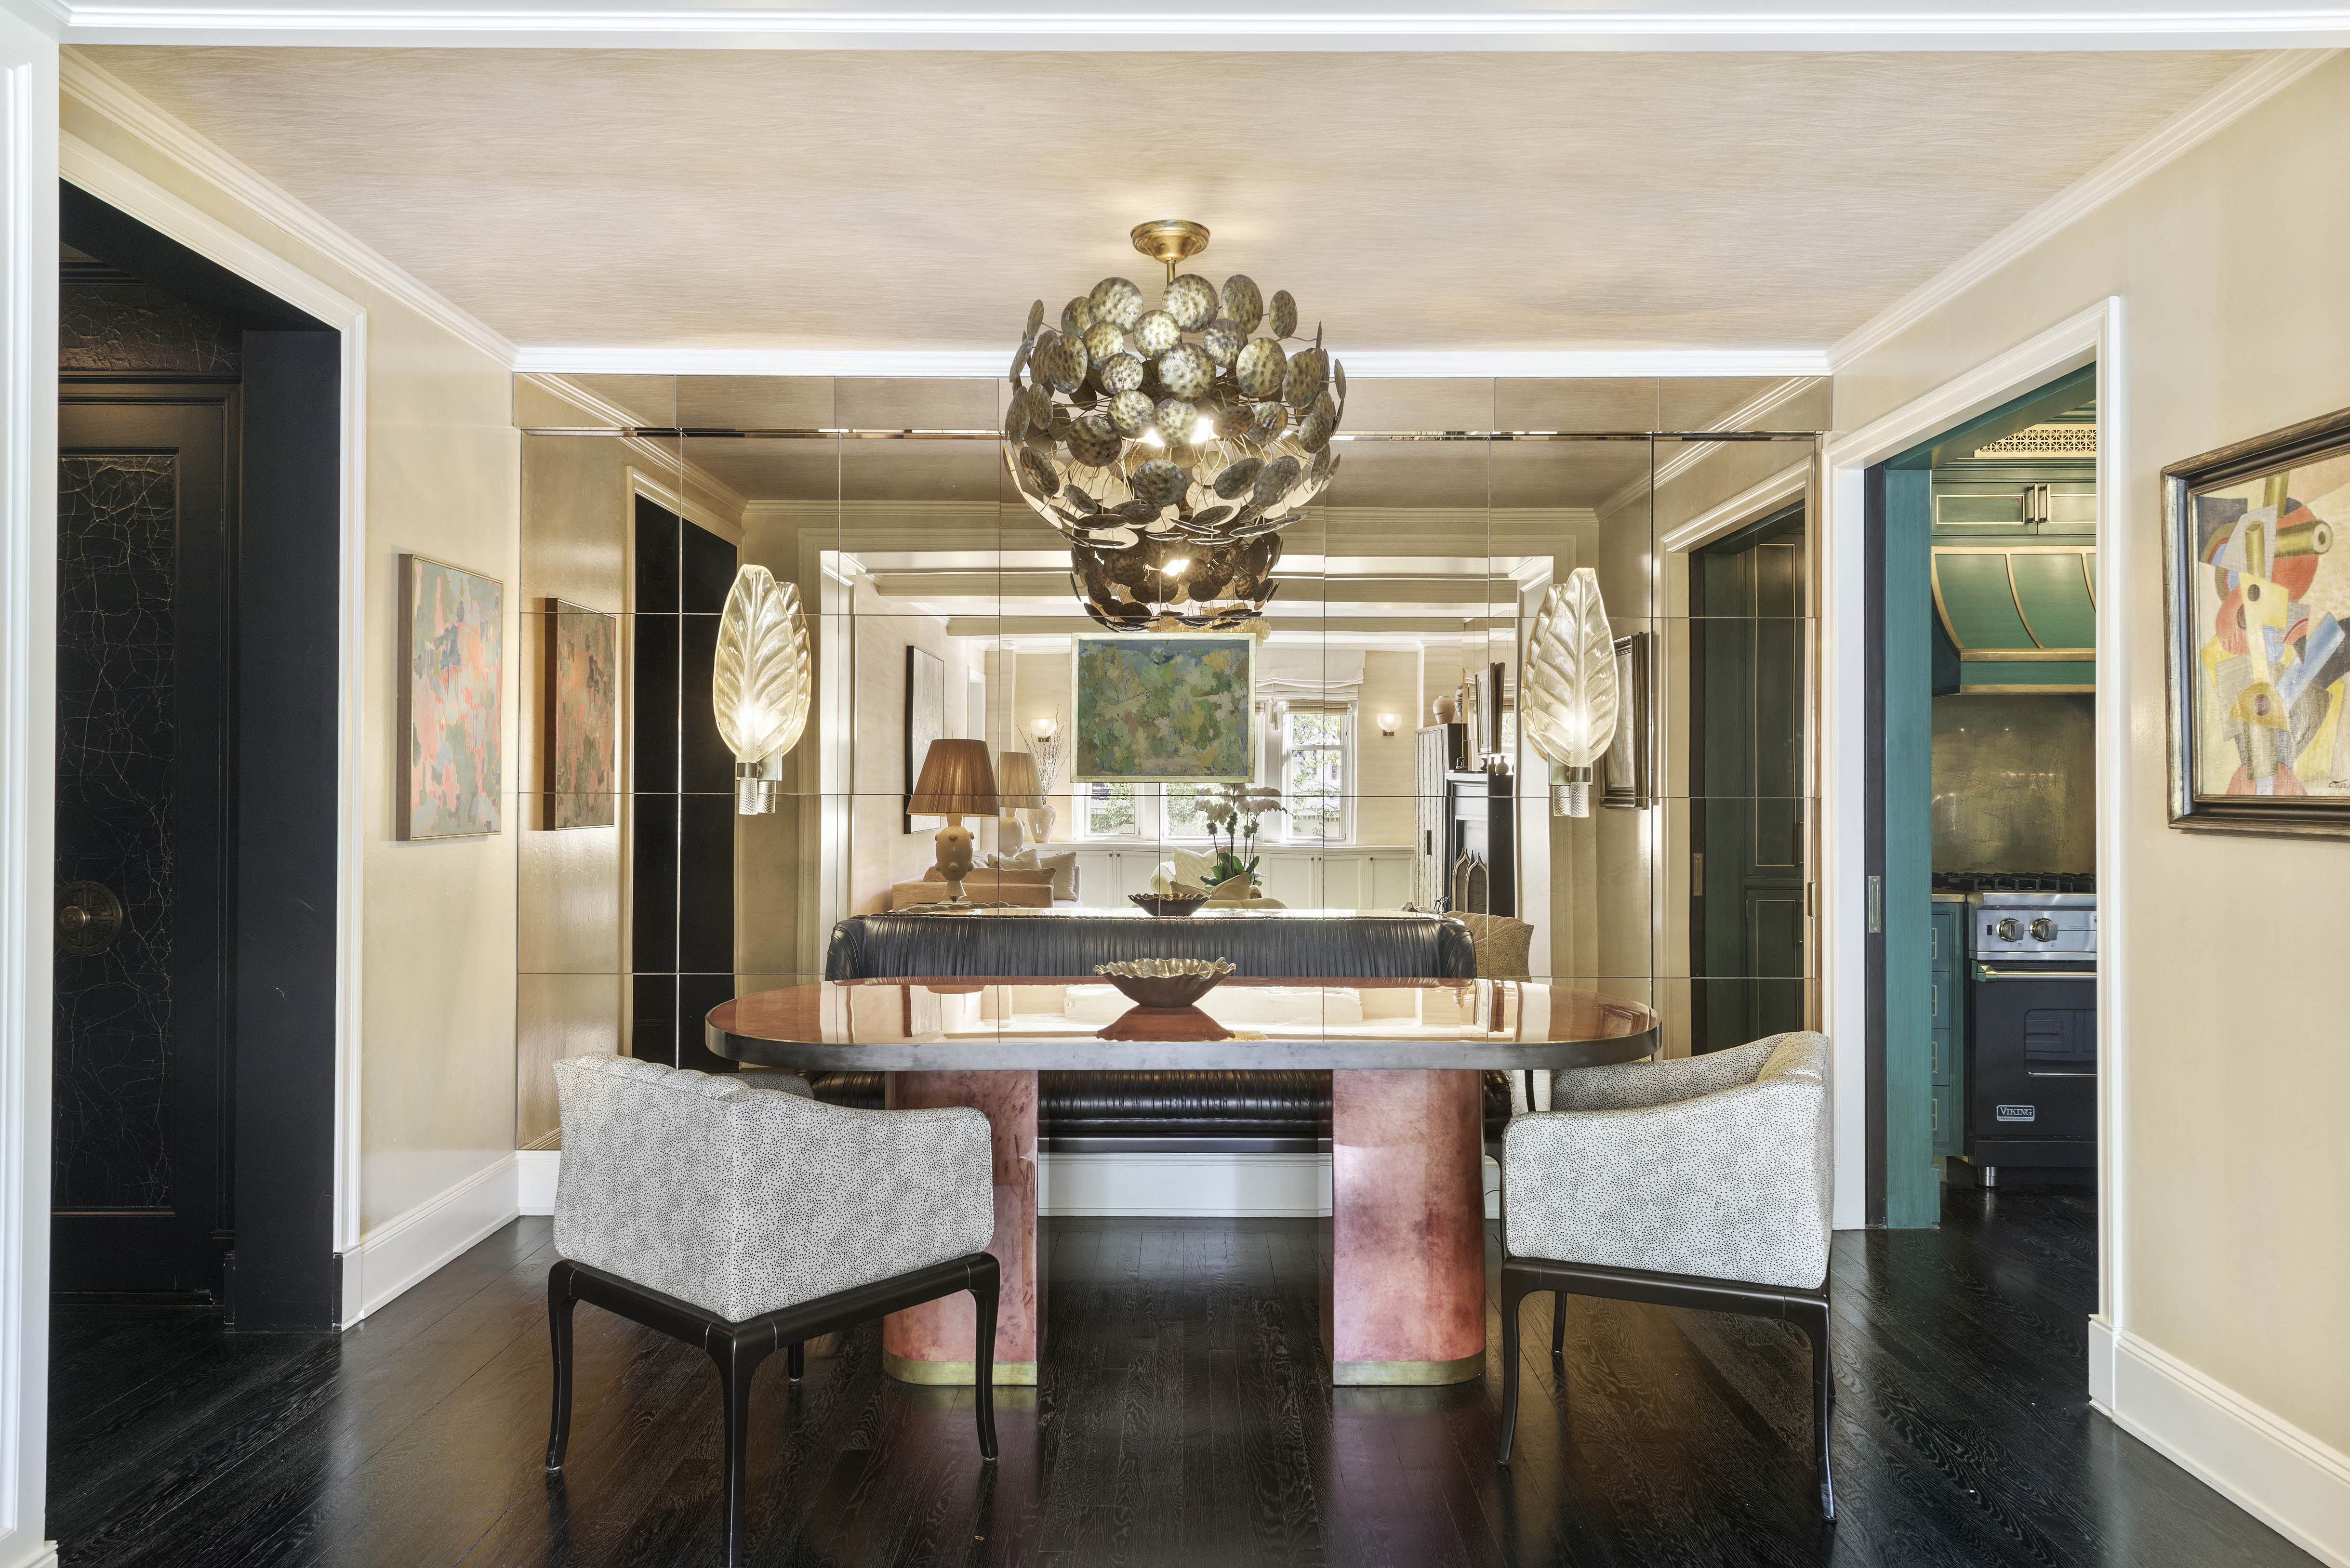 It S The One Cameron Diaz Manhattan Flat On Sale For 4